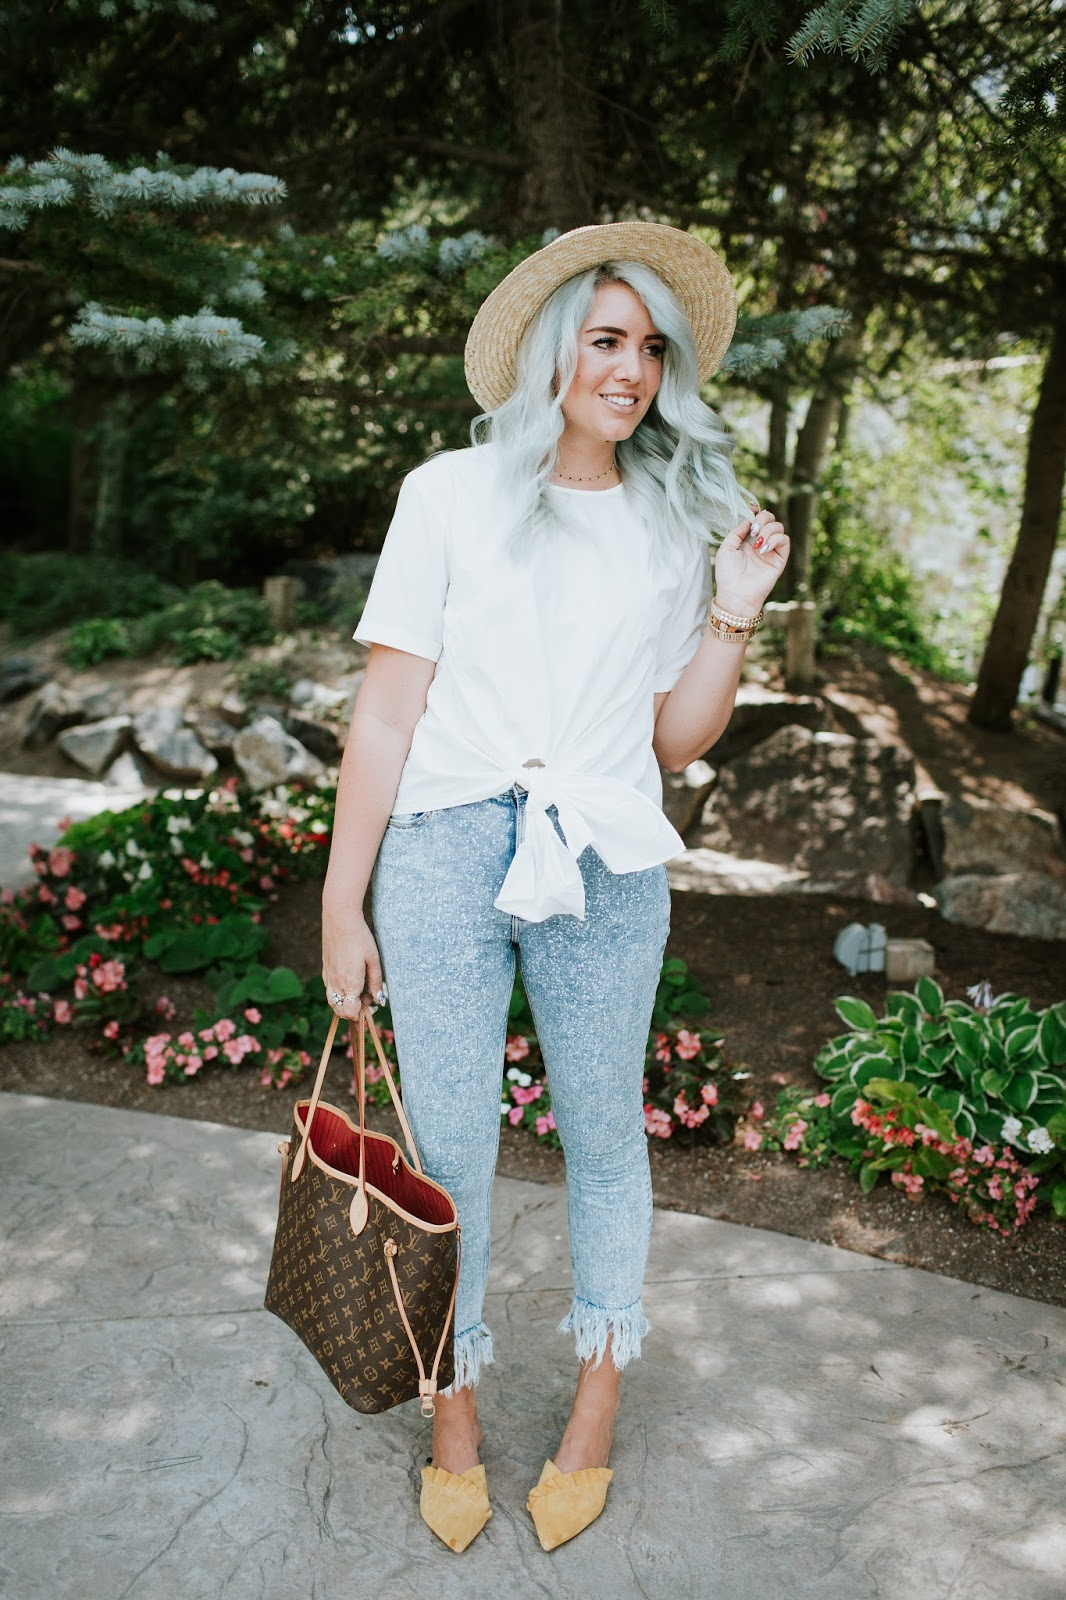 Fringe jeans, Utah Fashion Blogger, Light jeans